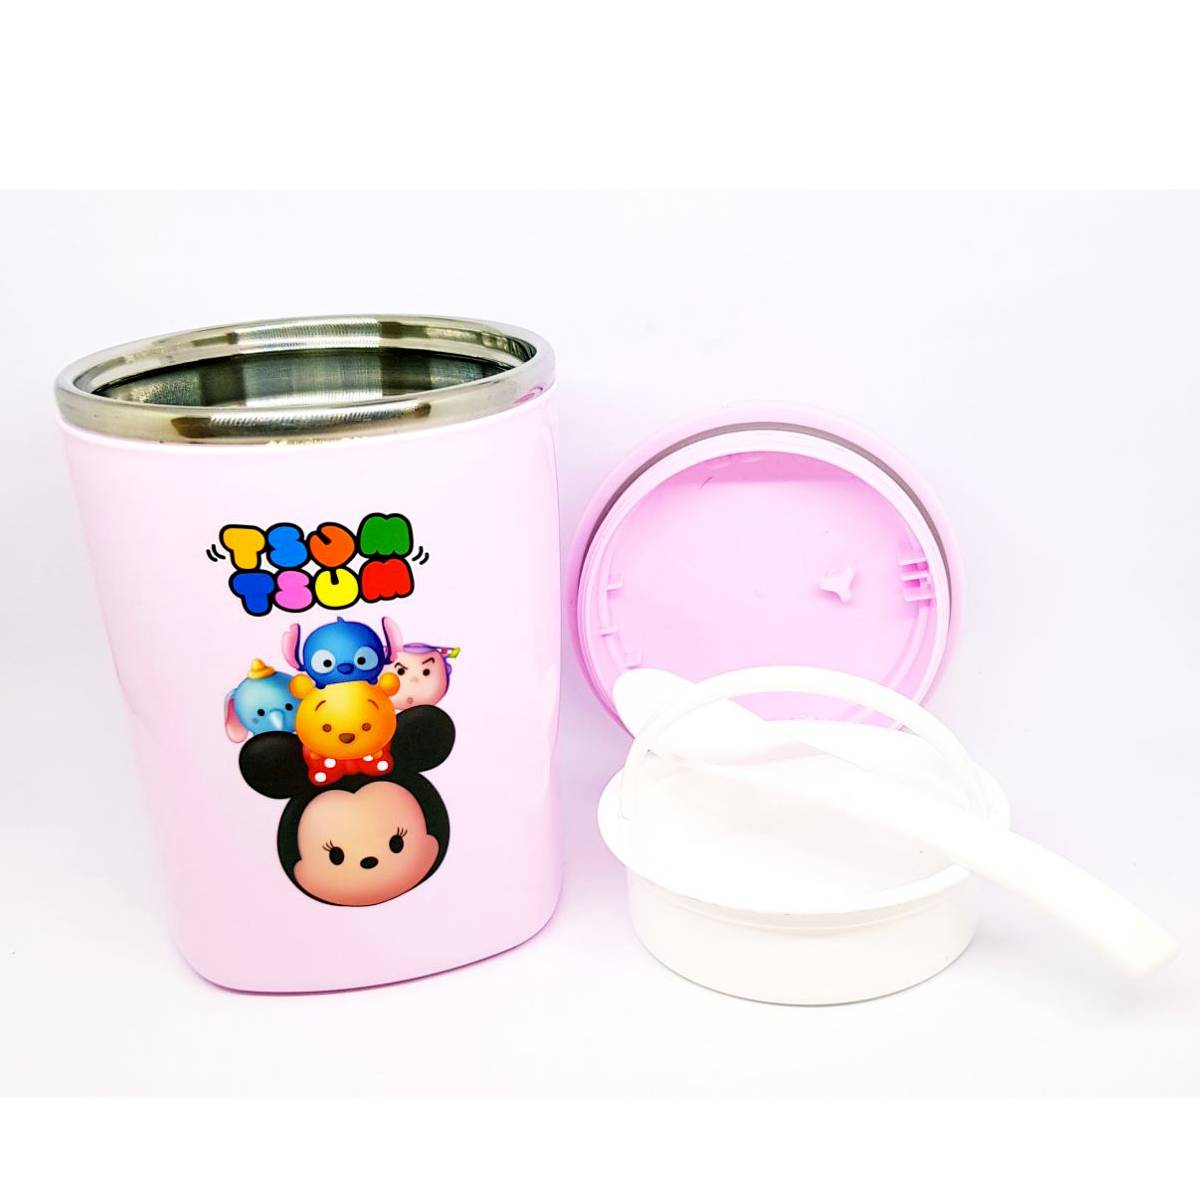 Tsum Tsum Lunch Box Stainless Steel